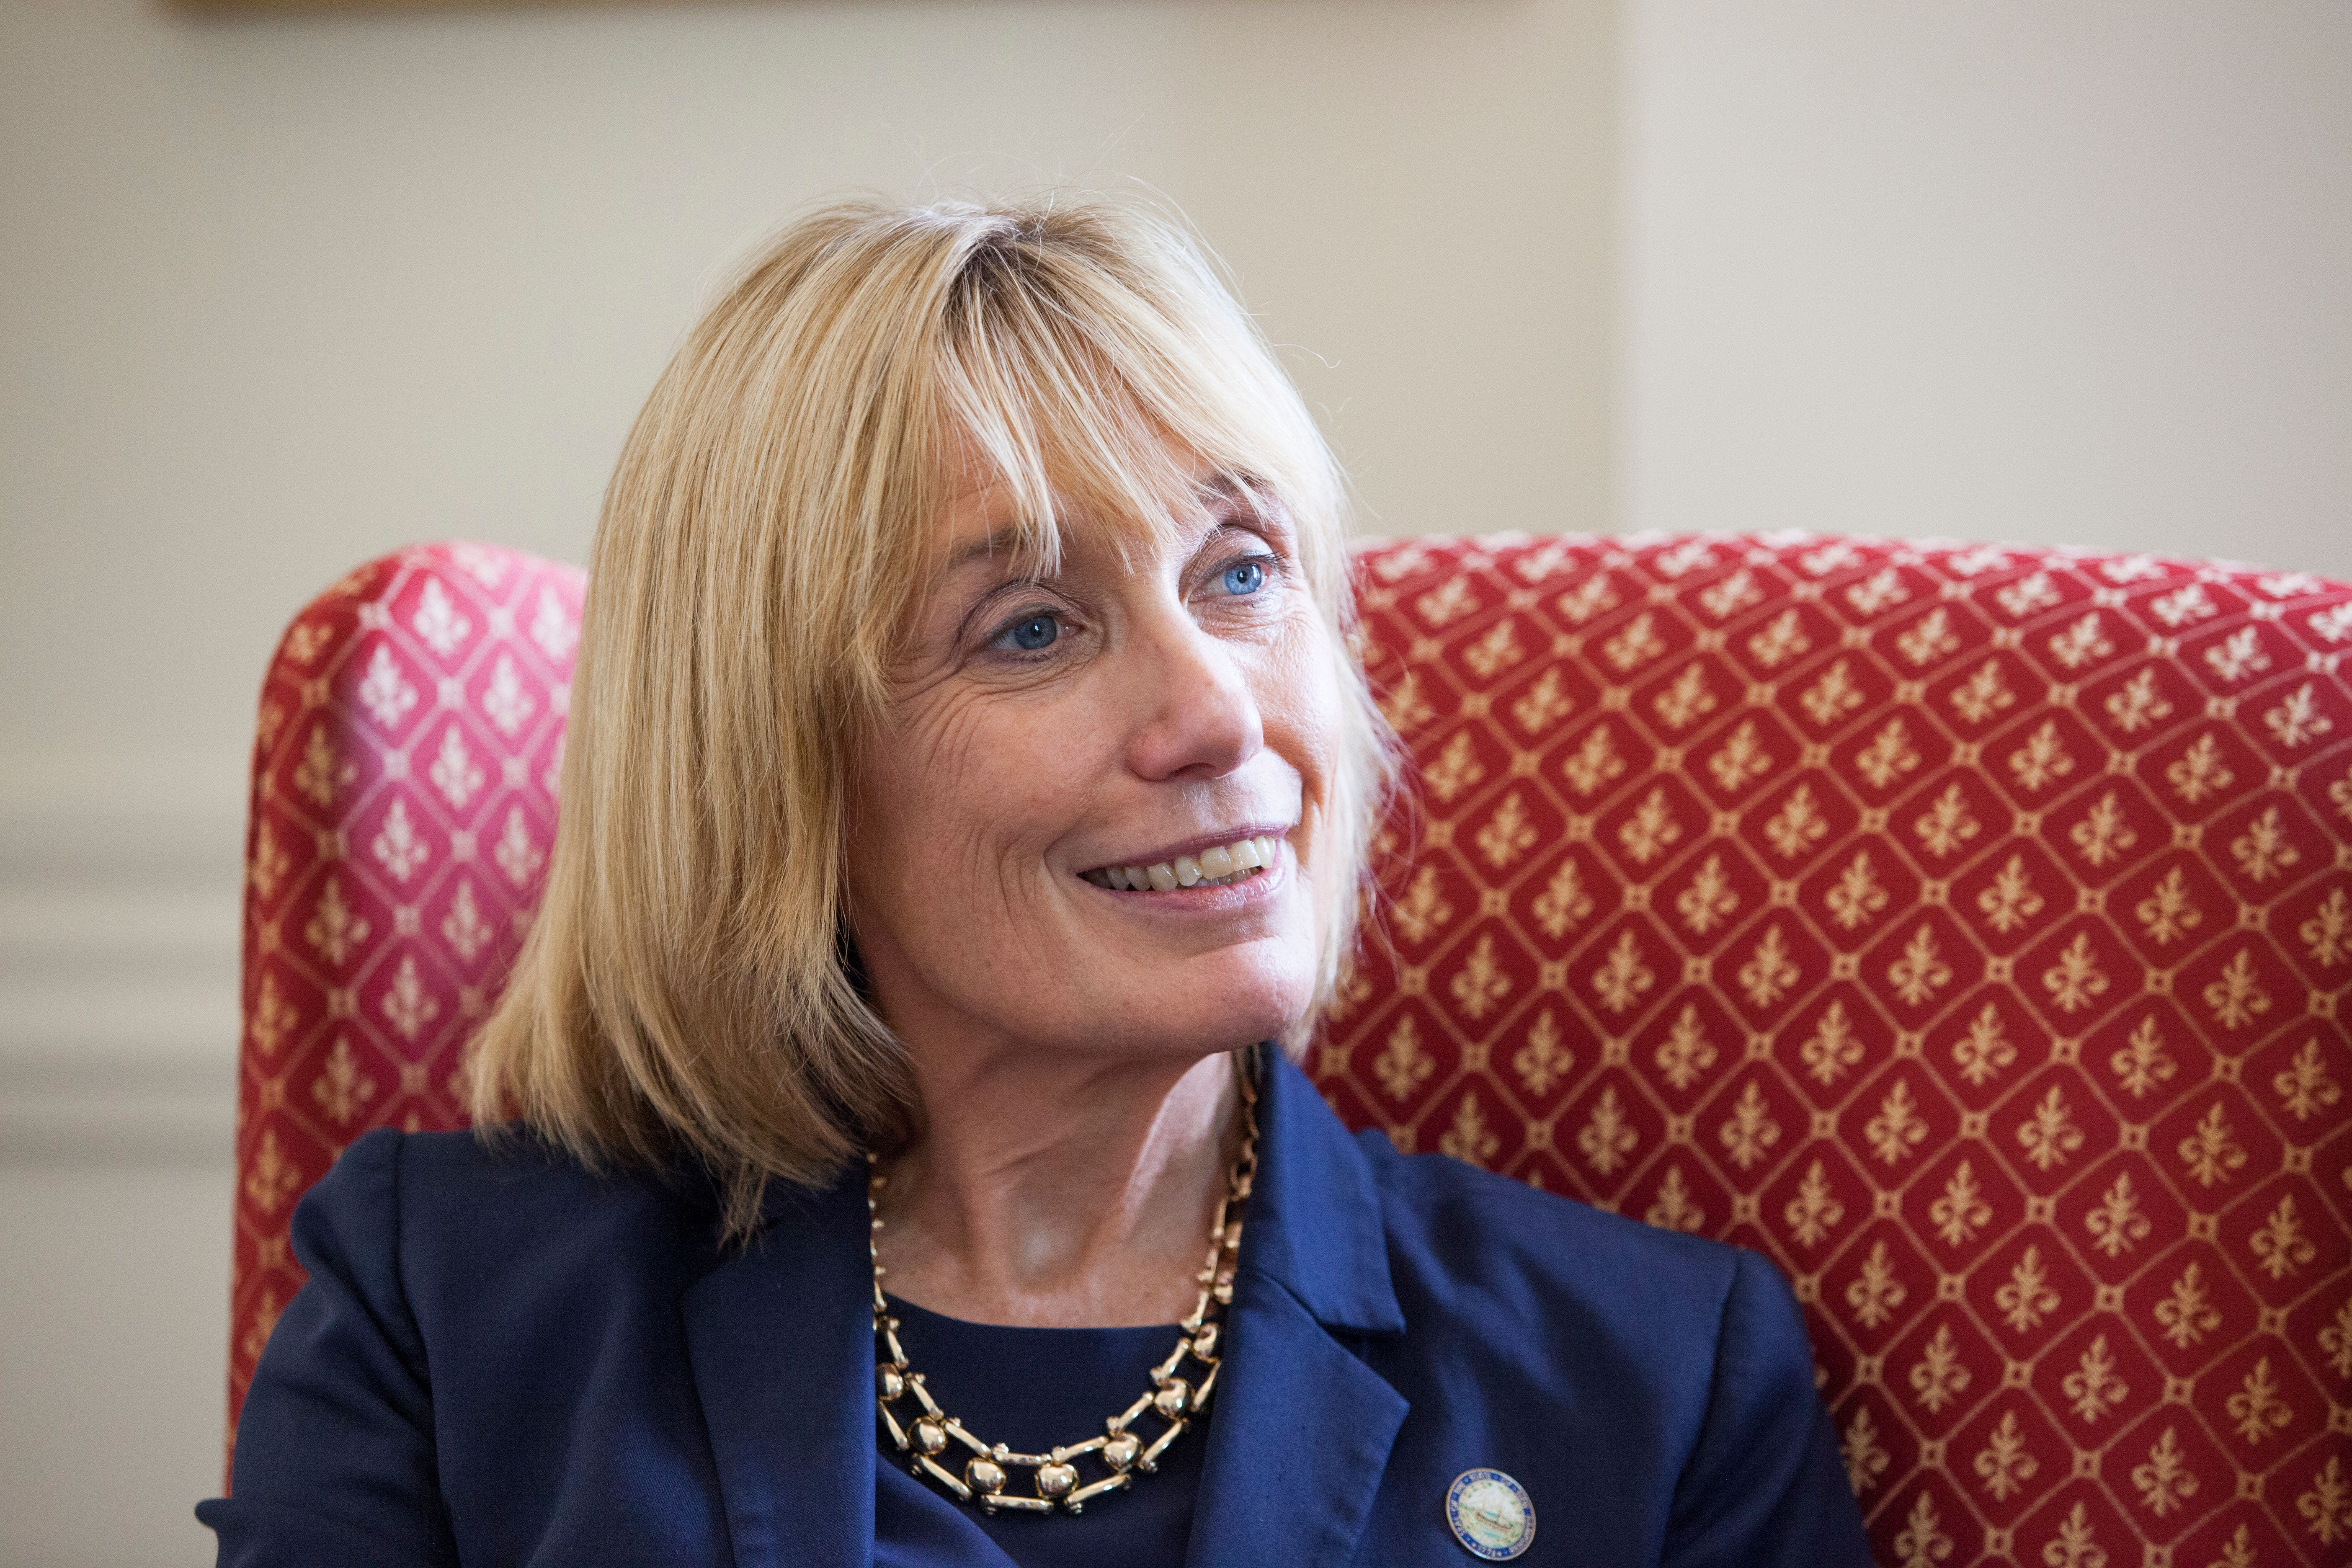 MANCHESTER, NH - SEPTEMBER 9: Governor Maggie Hassan (r.) chats with a reporter in her office at the statehouse, on September 9, 2016 in Manchester, New Hampshire. Hassan, a democrat, is running for US Senate against incumbent republican Kelly Ayotte in a hotly-contested race. (Photo by Melanie Stetson Freeman/The Christian Science Monitor via Getty Images)